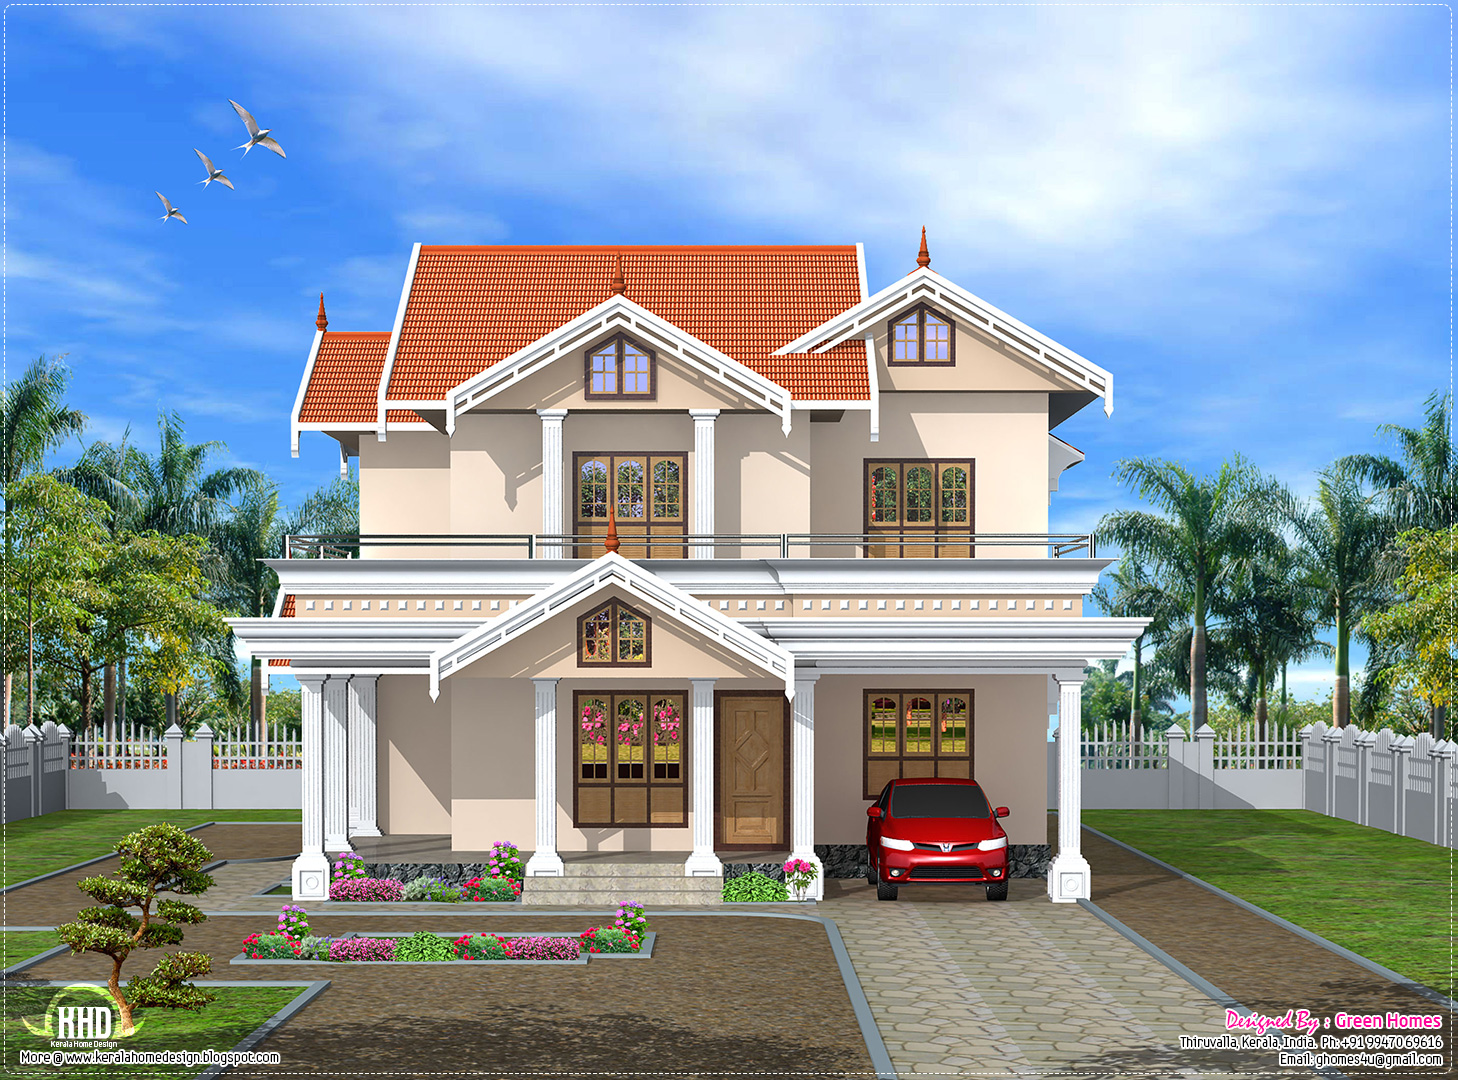 Different designs of front elevations views houses plans for New kerala house plans with front elevation